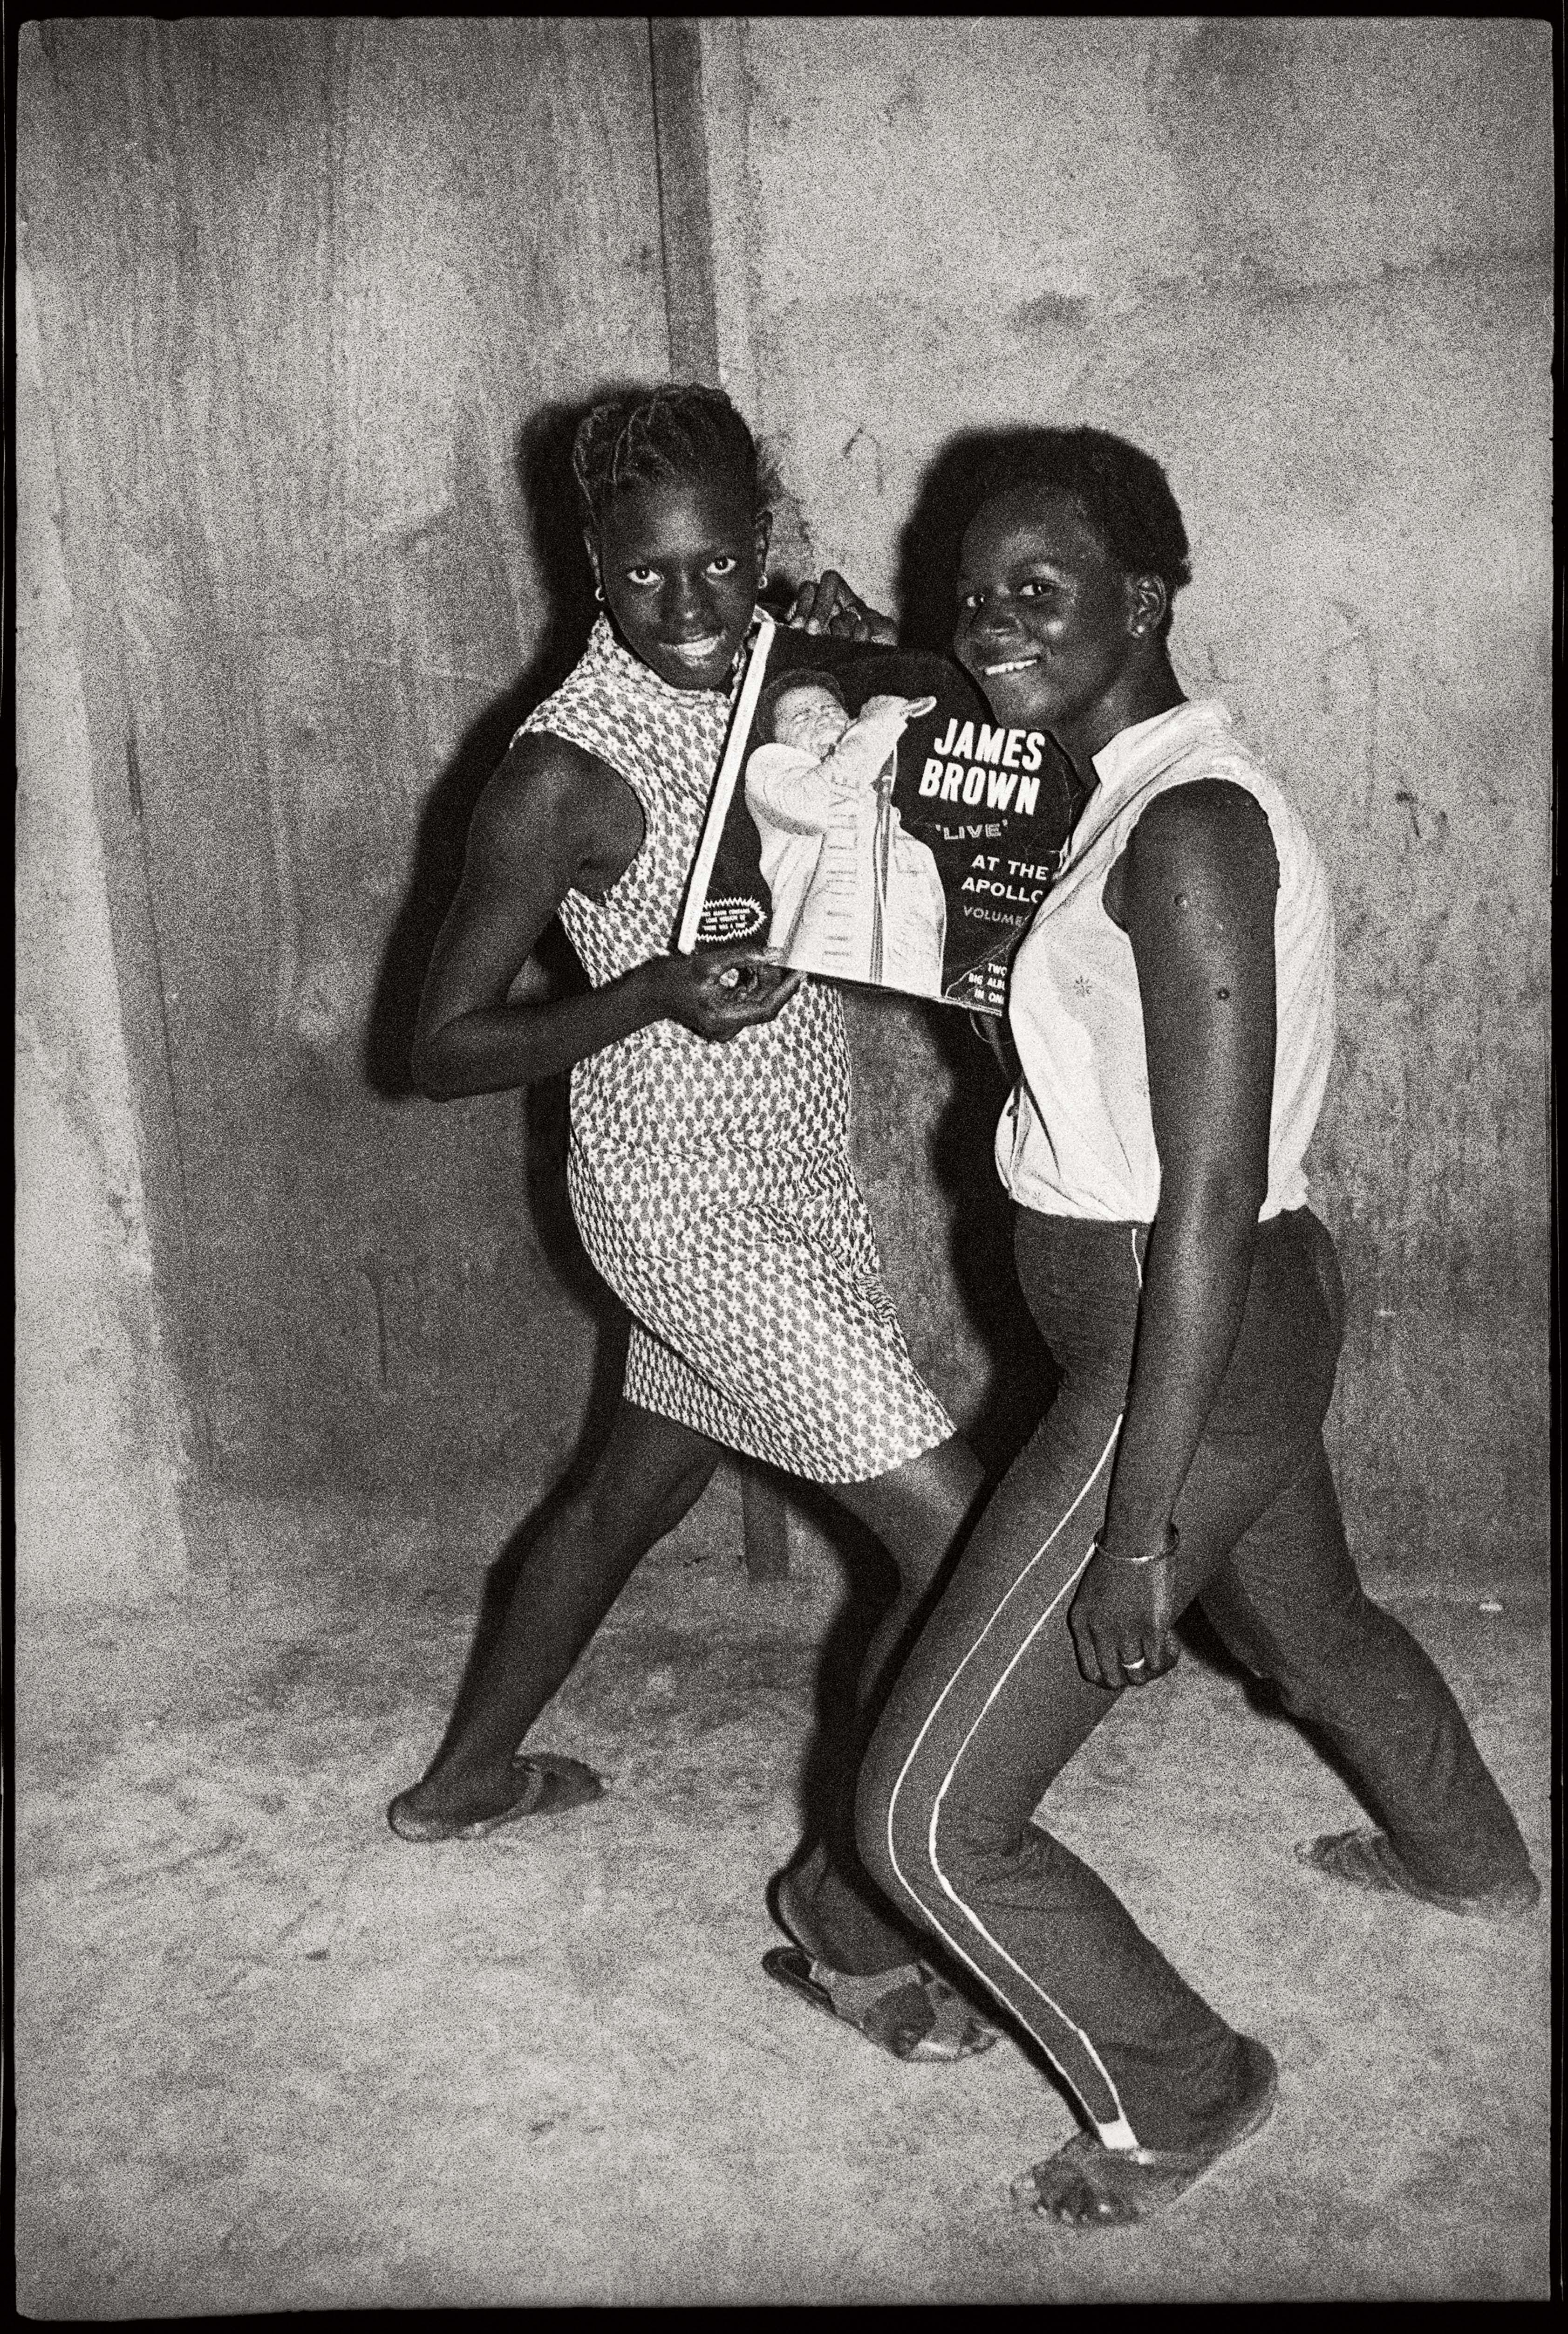 Malick Sidibé Fans de James Brown, 1965 Tirage gélatino-argentique 50,5 x 40,5 cm Collection Fondation Cartier pour l'art contemporain, Paris © Malick Sidibé